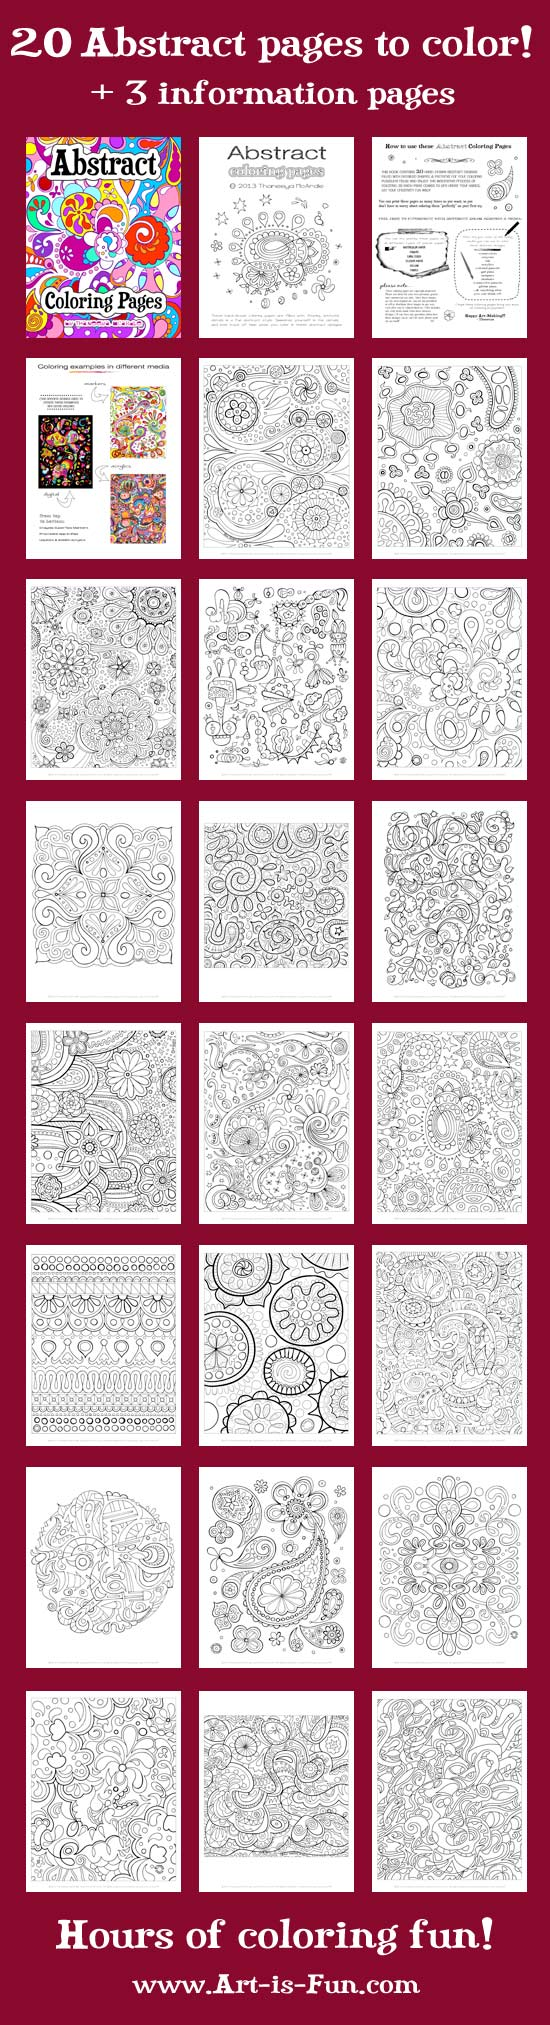 Cool 1.5 Binder Spine Template Thin 1099 Template Excel Clean 11x17 Brochure Template 120mm Fan Template Young 15 Year Old Resumes Red2 Page Resumes Ok Free Abstract Coloring Page To Print: Detailed, Psychedelic ..